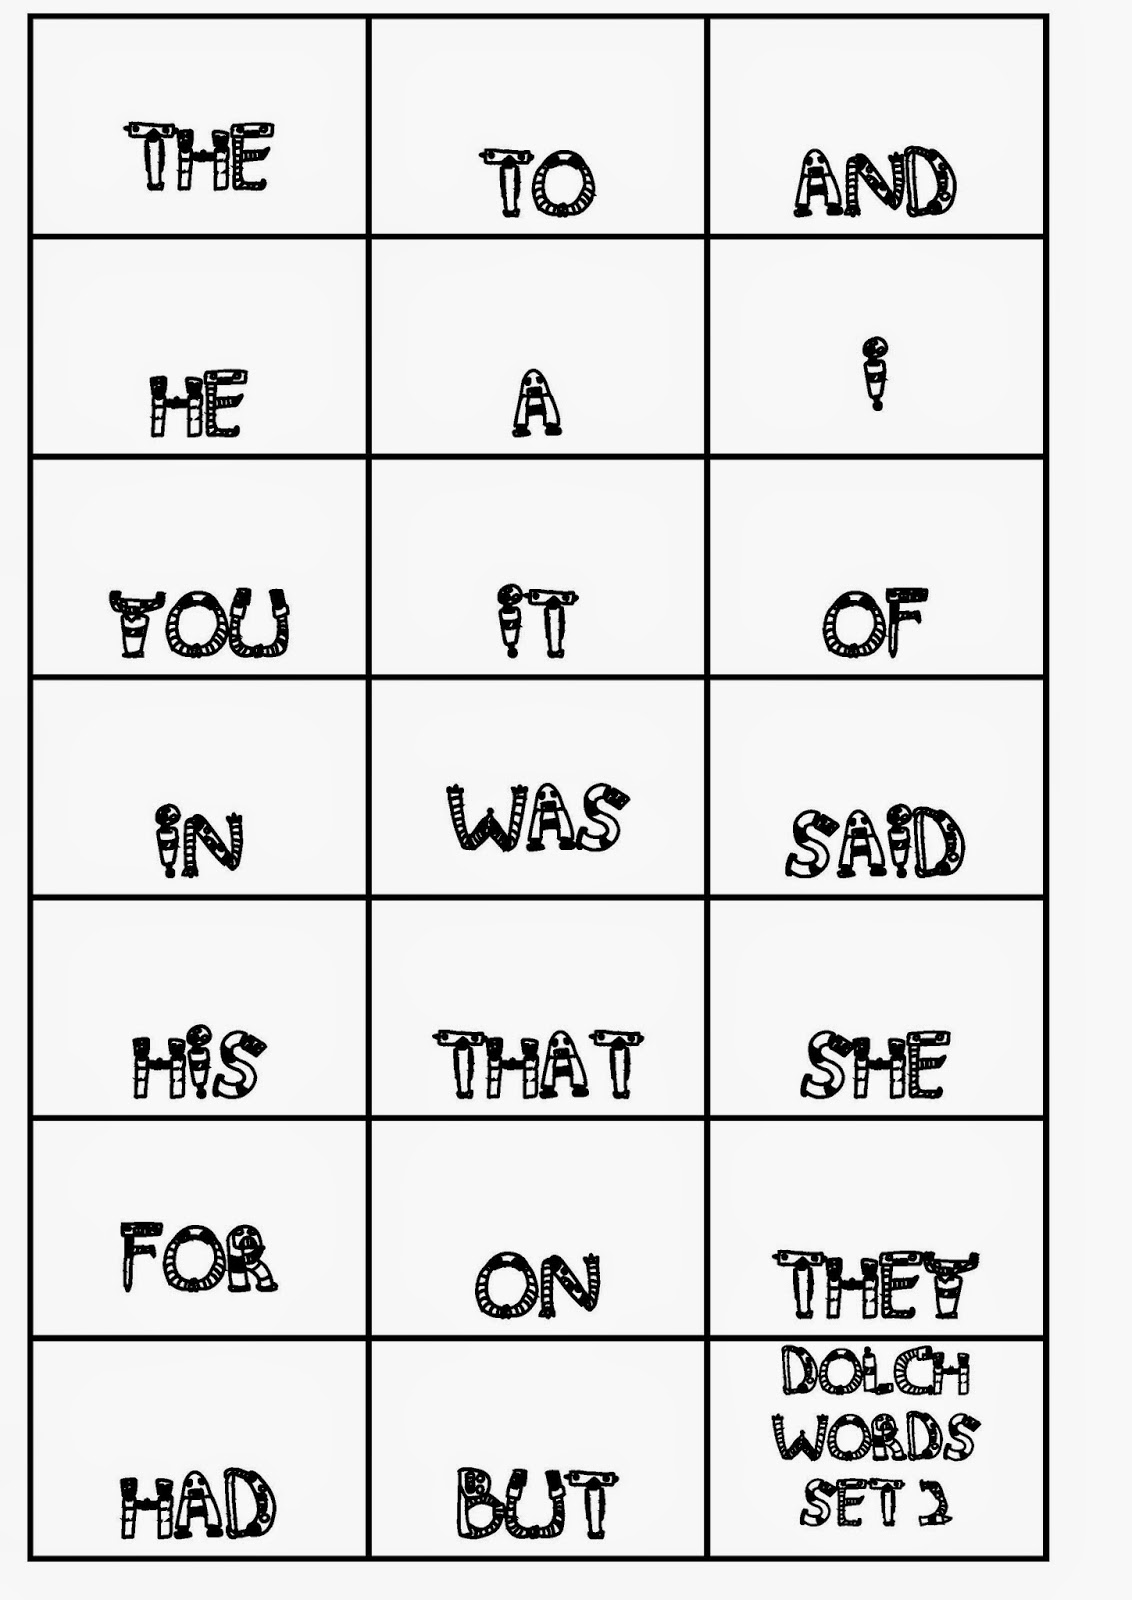 Words  Memory word Printables Game Teacher: memory Games : Cards Loop printable dolch and games Sight sight